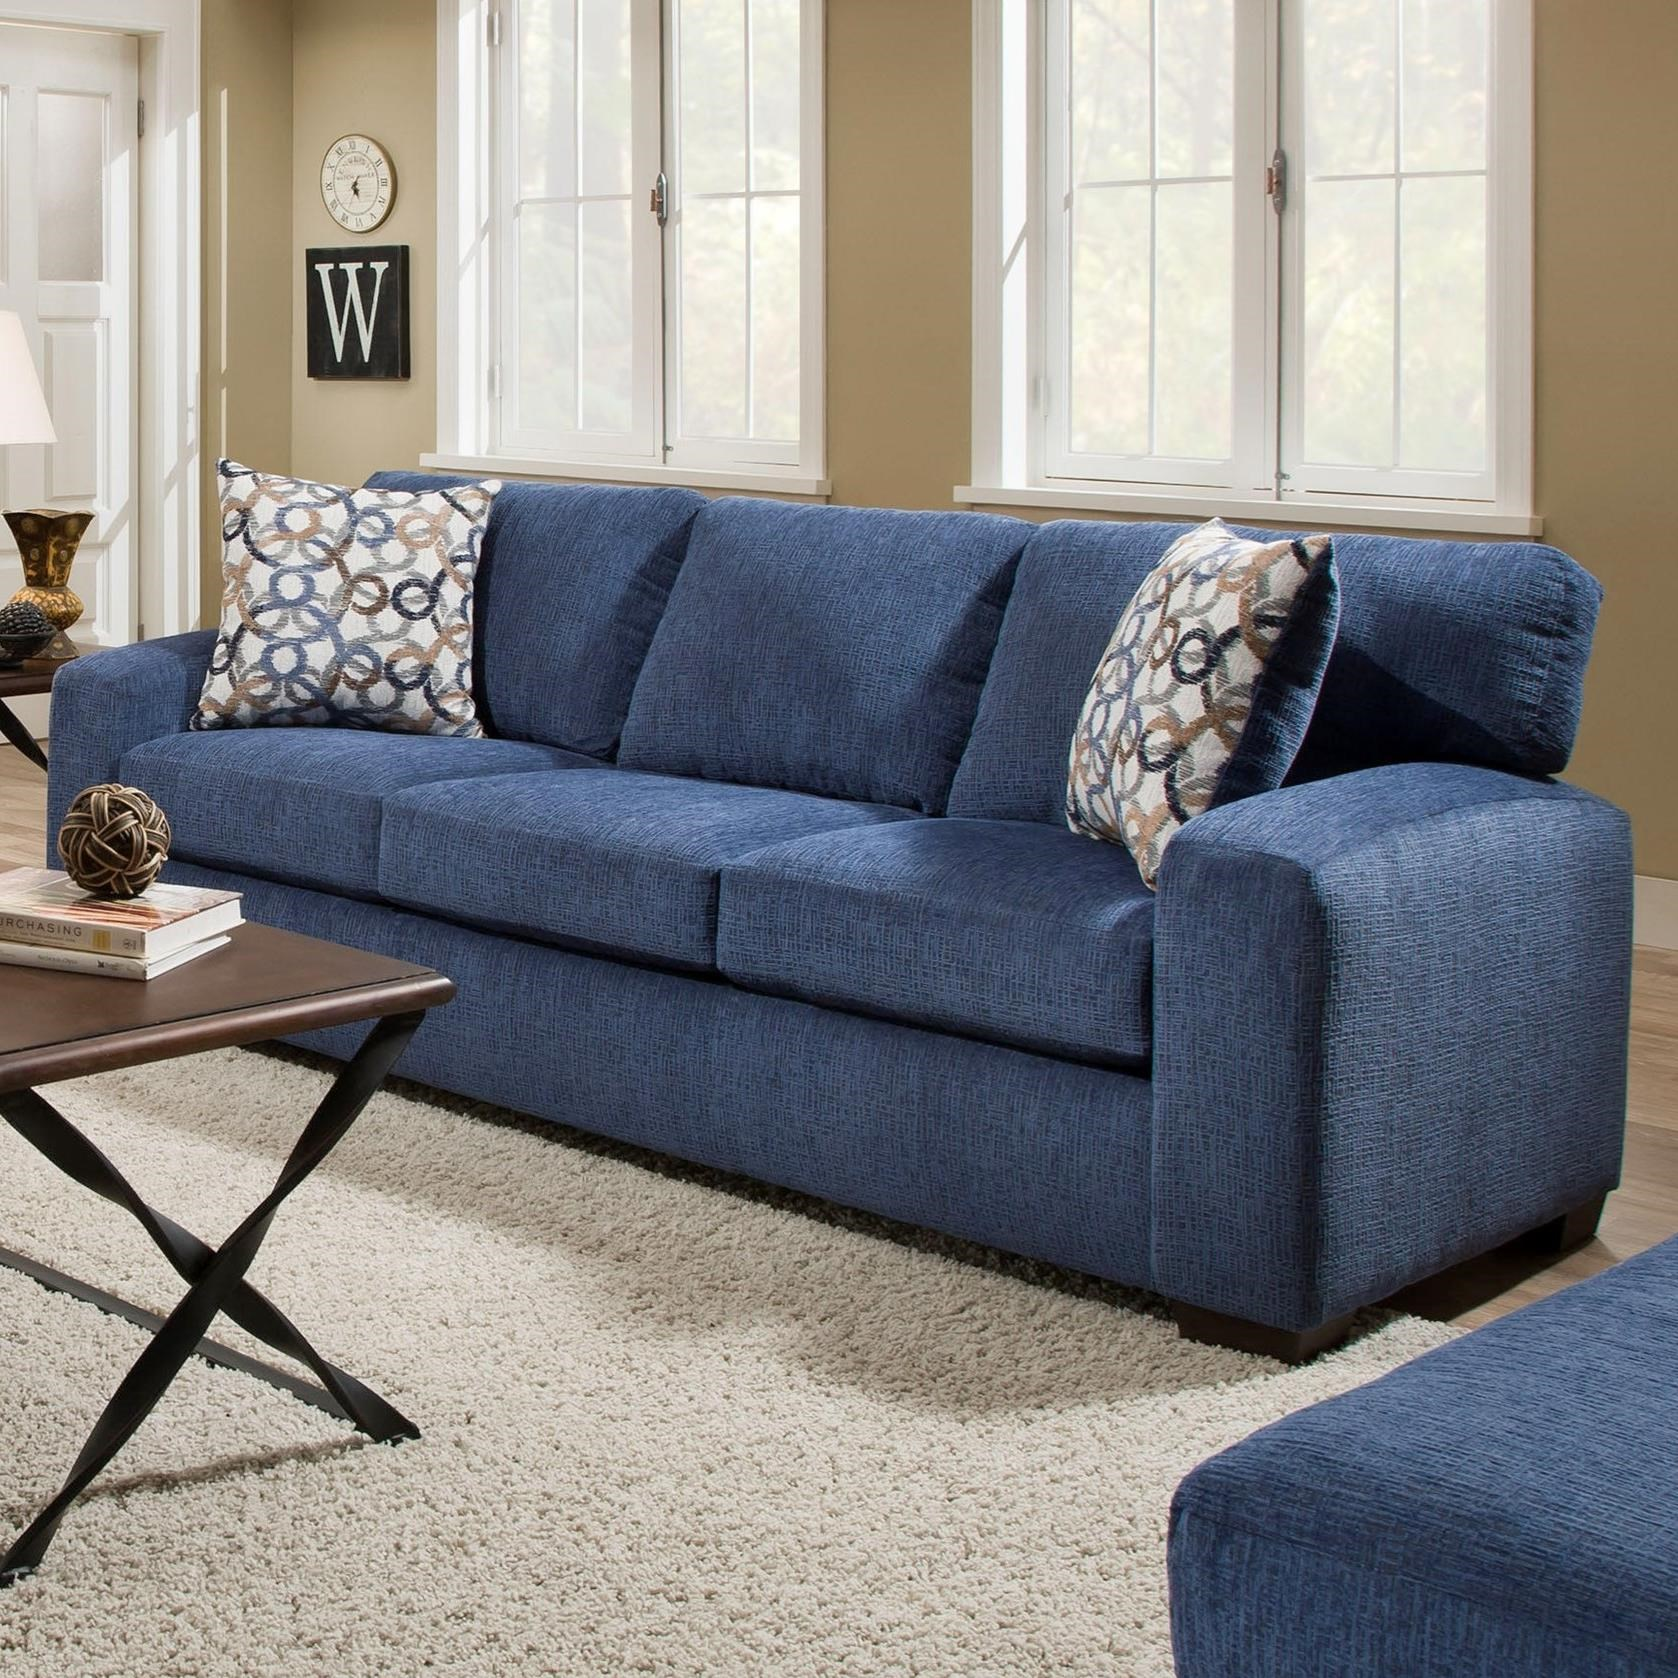 american furniture living room sectionals pic of grey rooms 5250 5253 4216 sofa fair north